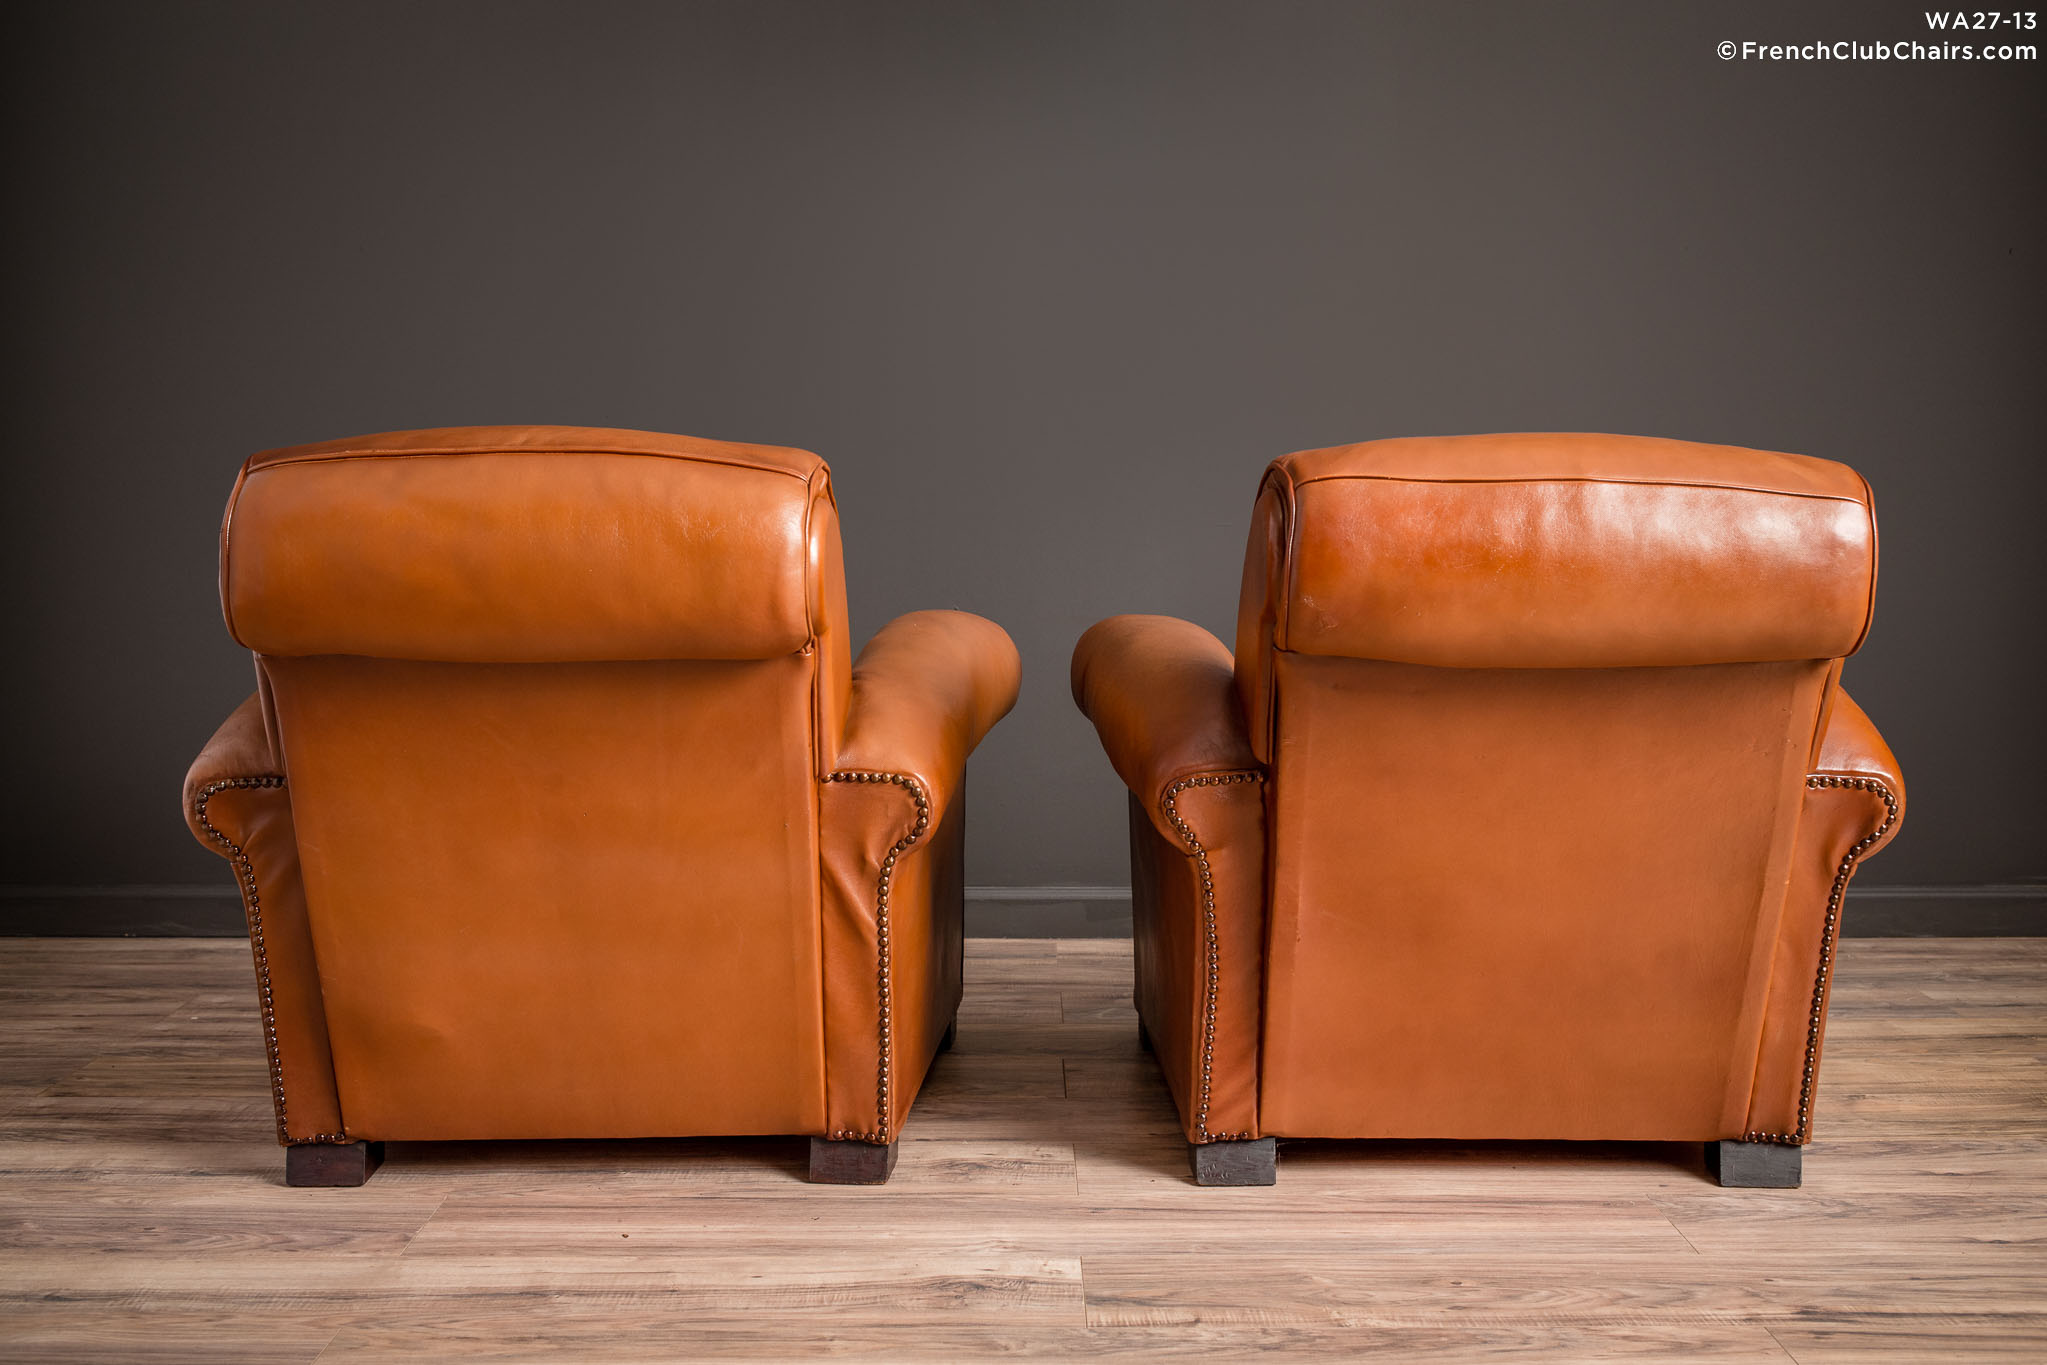 WA_27-13_La_Ministre_Rollback_Lounge_Pair_R_2BK-v01-williams-antiks-leather-french-club-chair-wa_fcccom